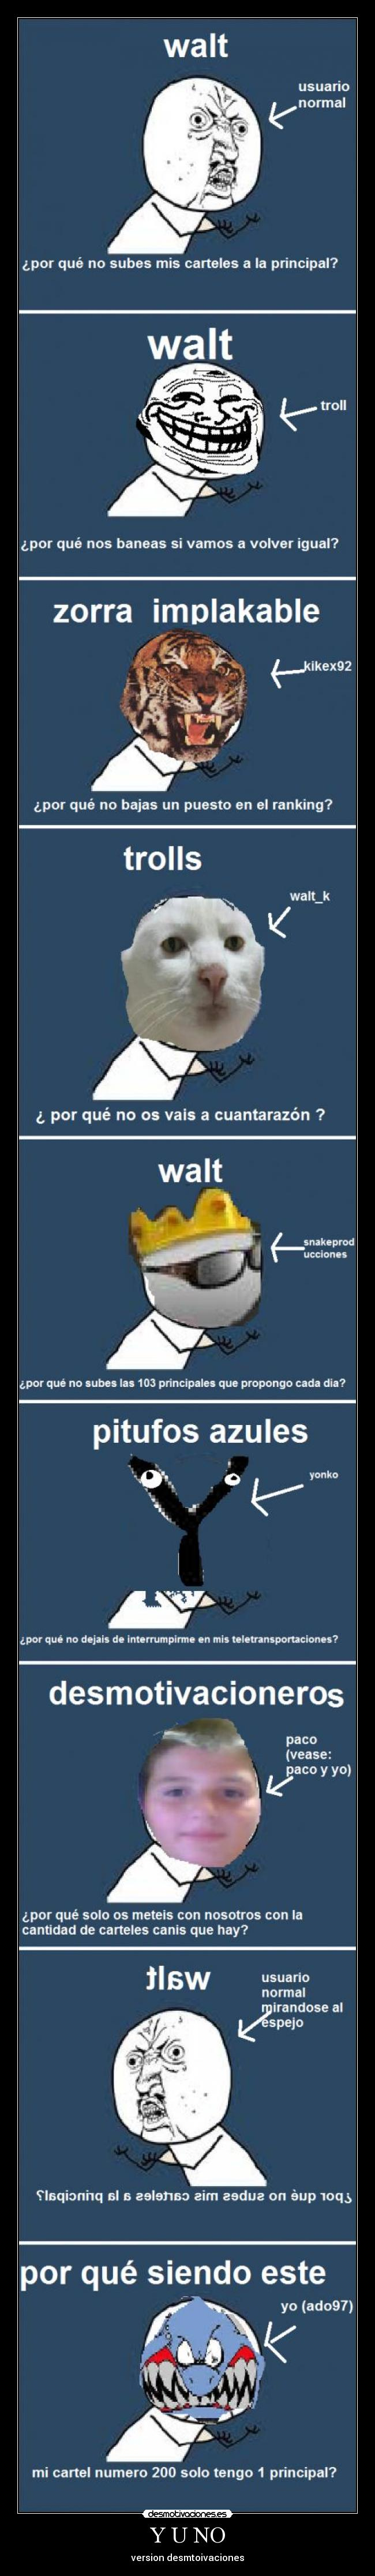 Y U NO - version desmtoivaciones